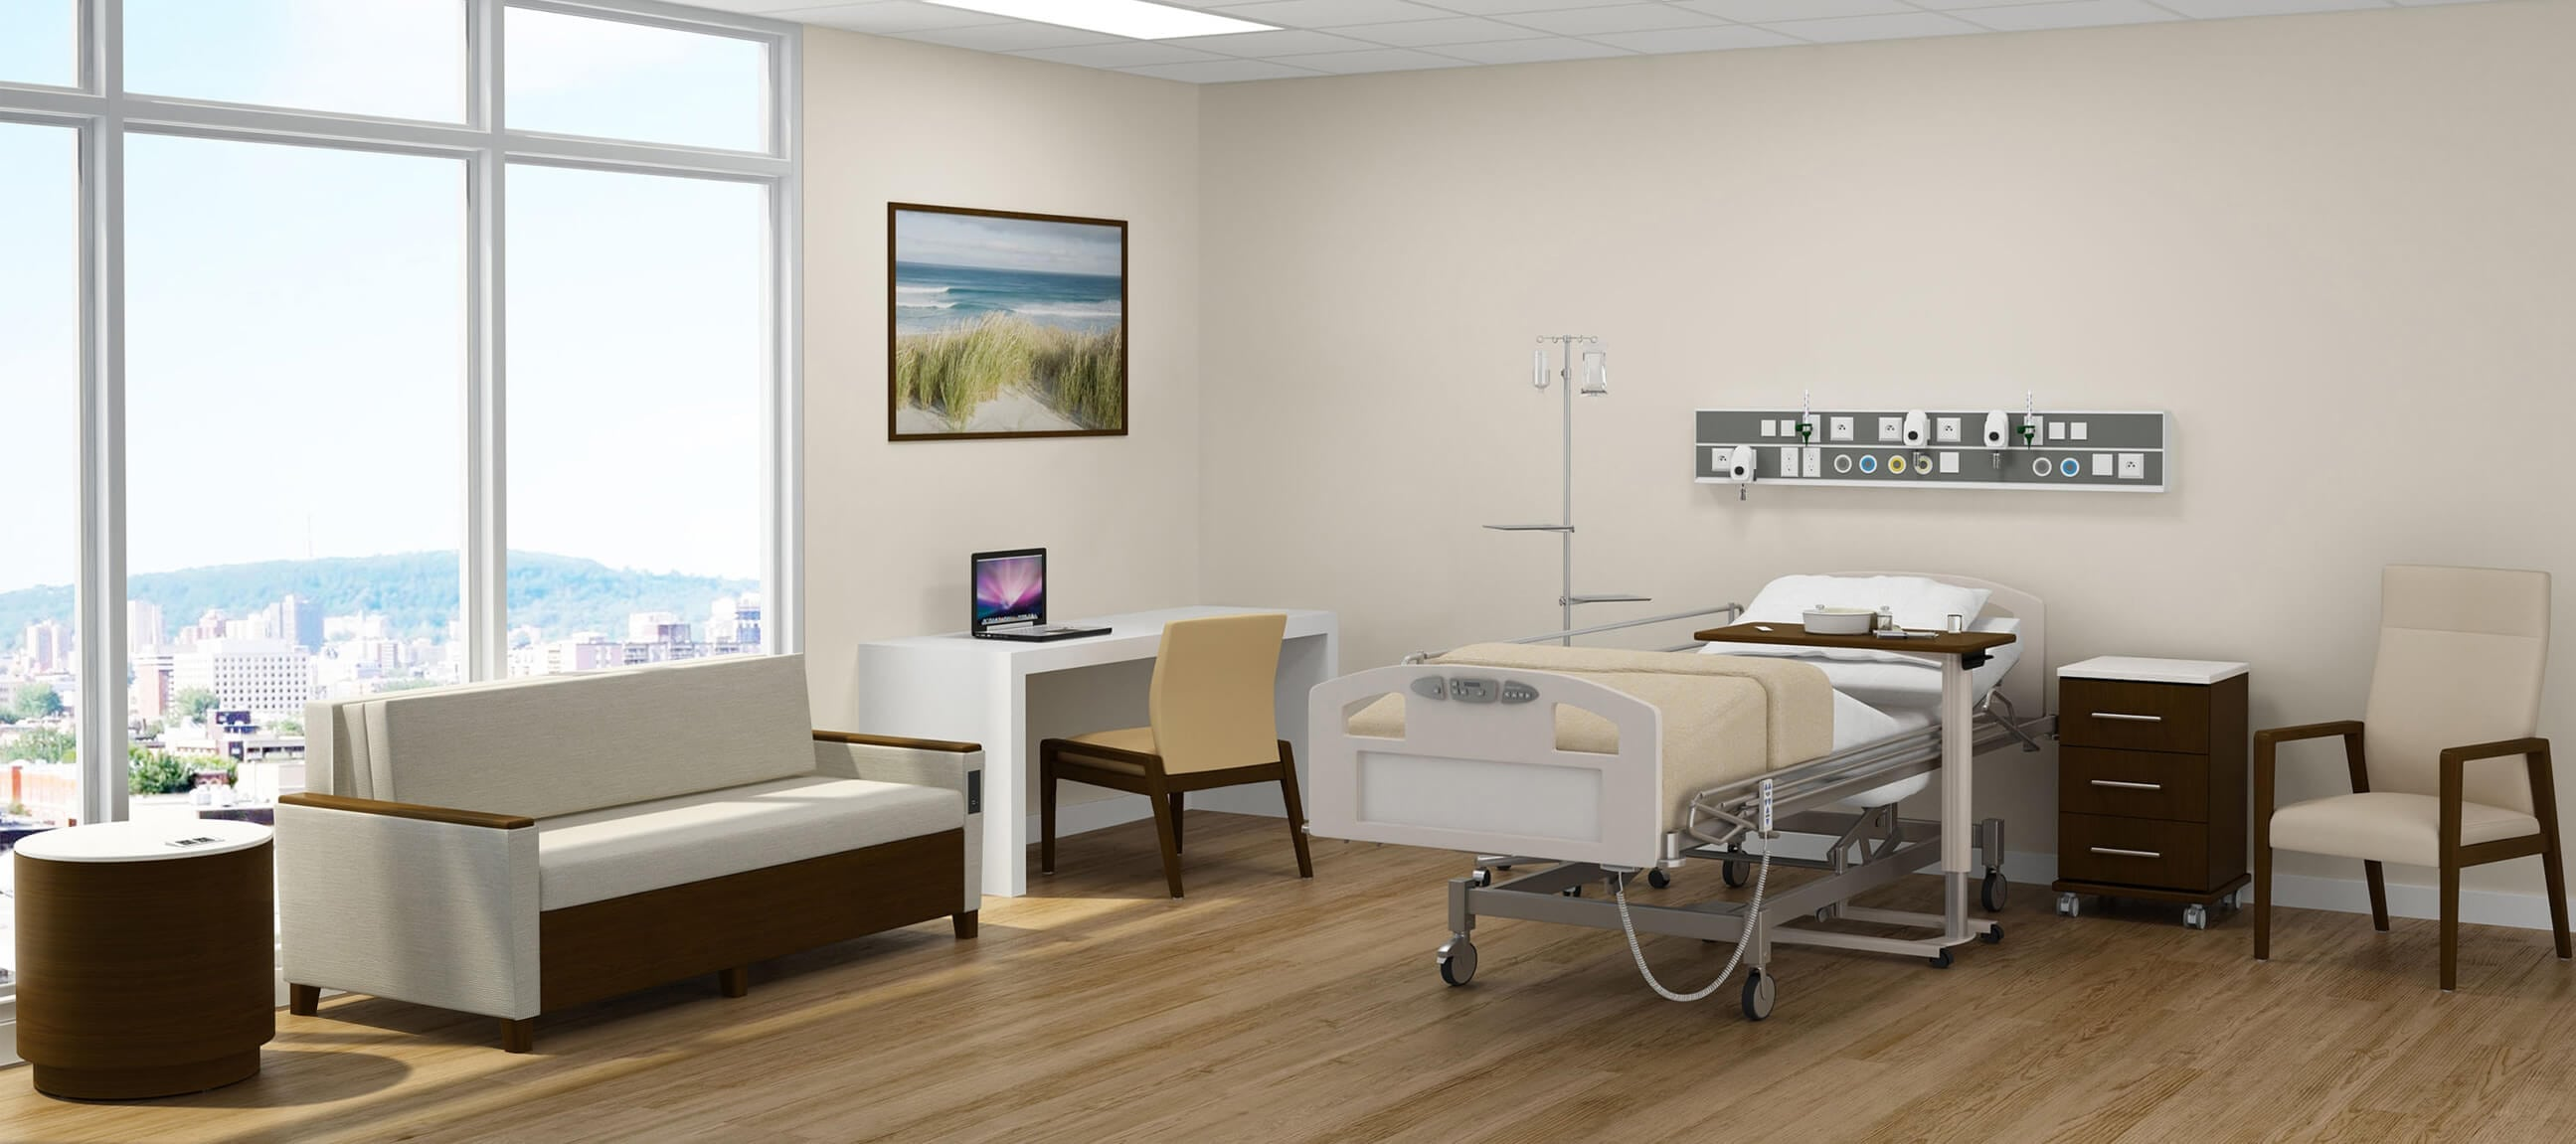 GetWell Patient Room